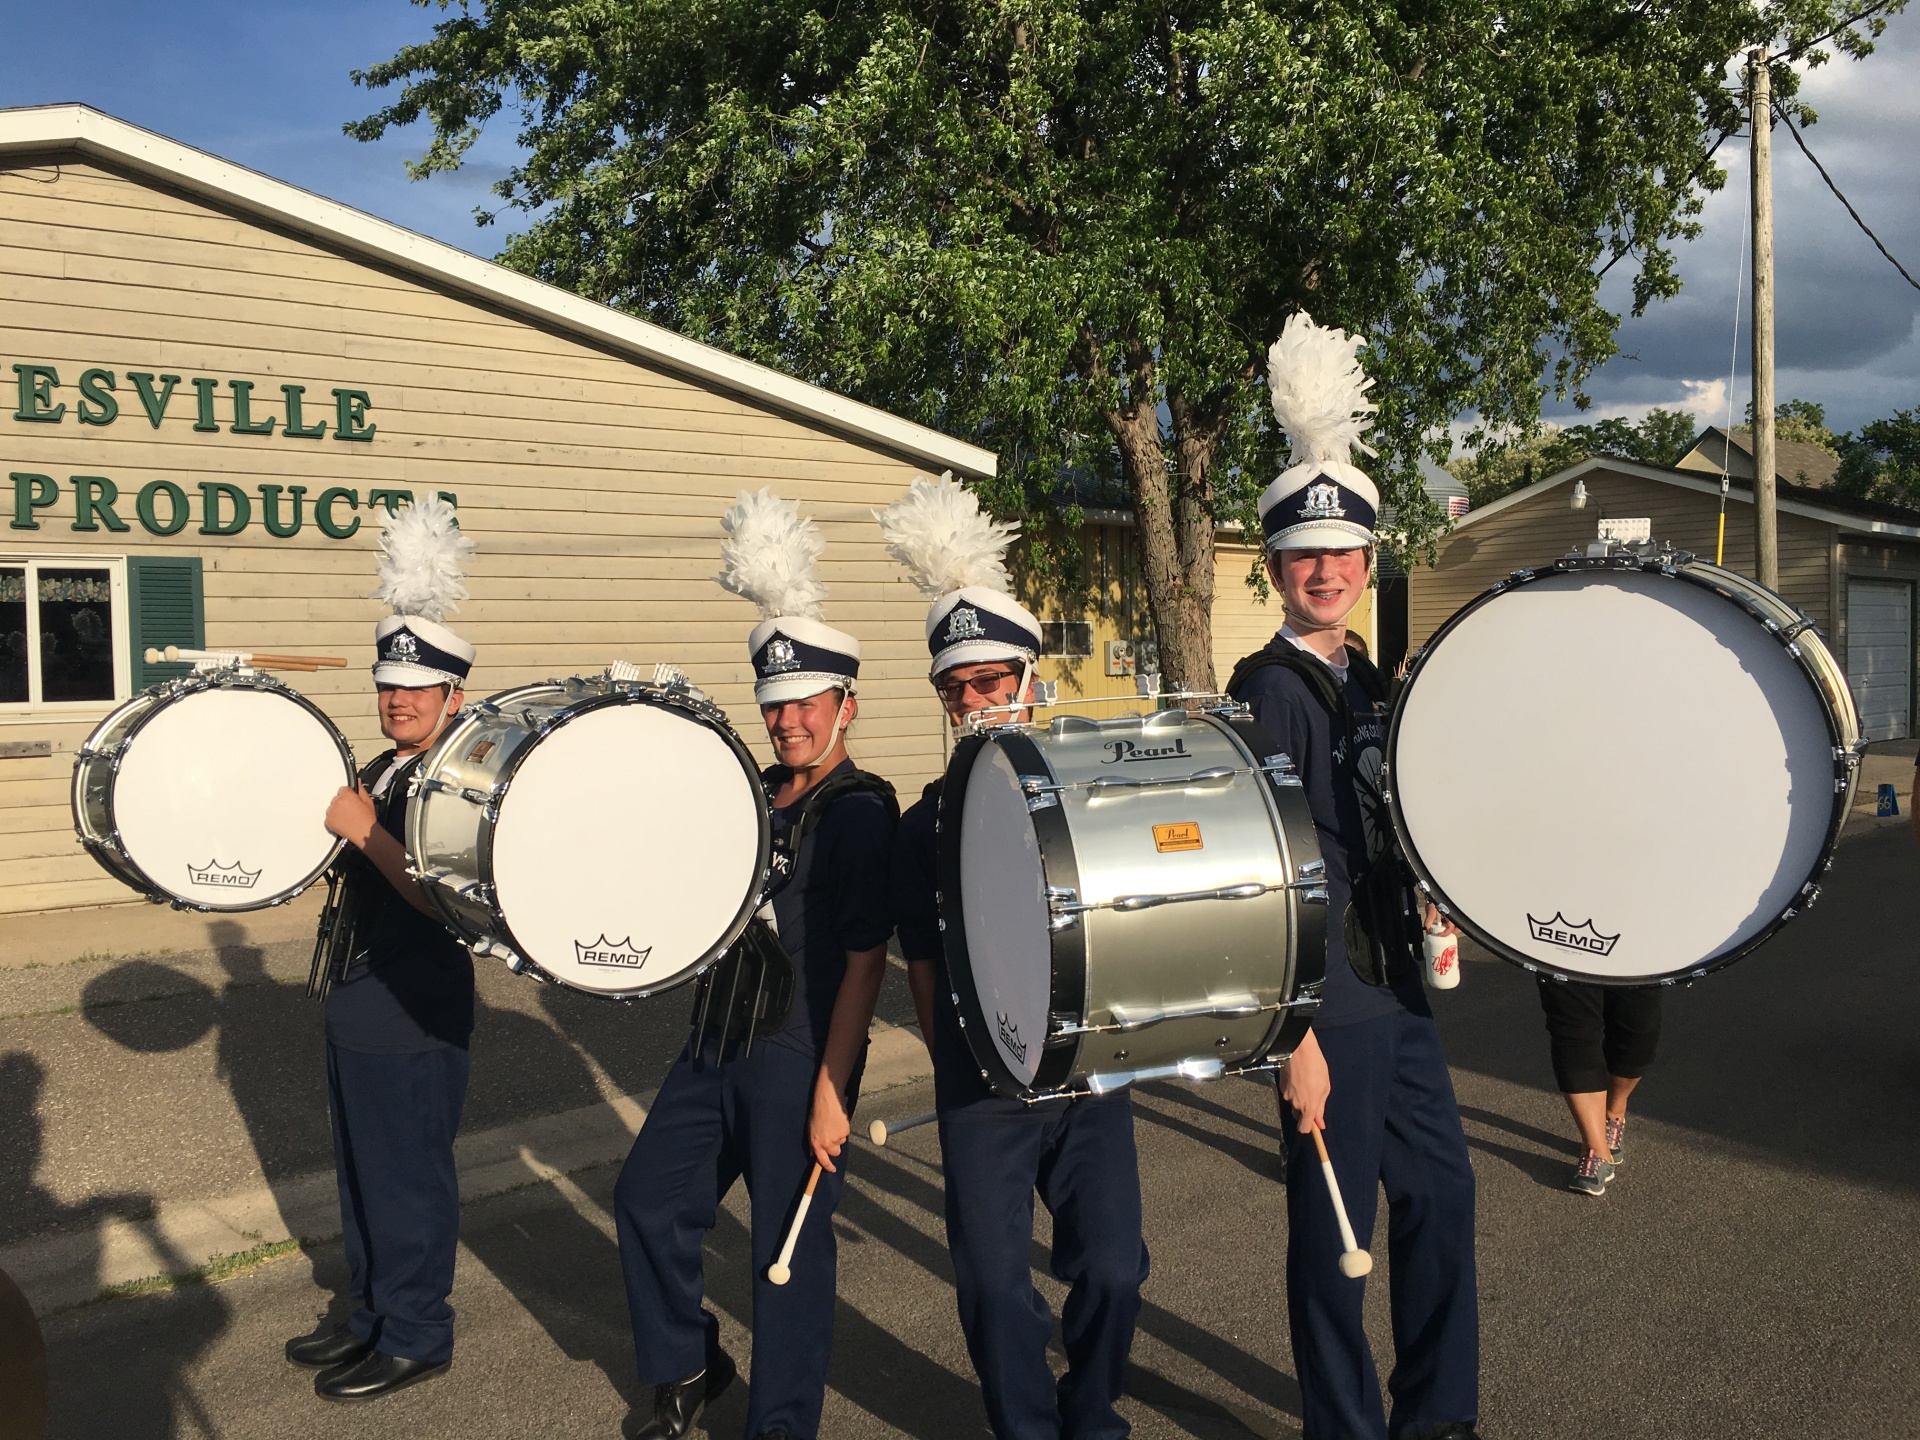 Marching Band Season Underway-Paynesville Parade